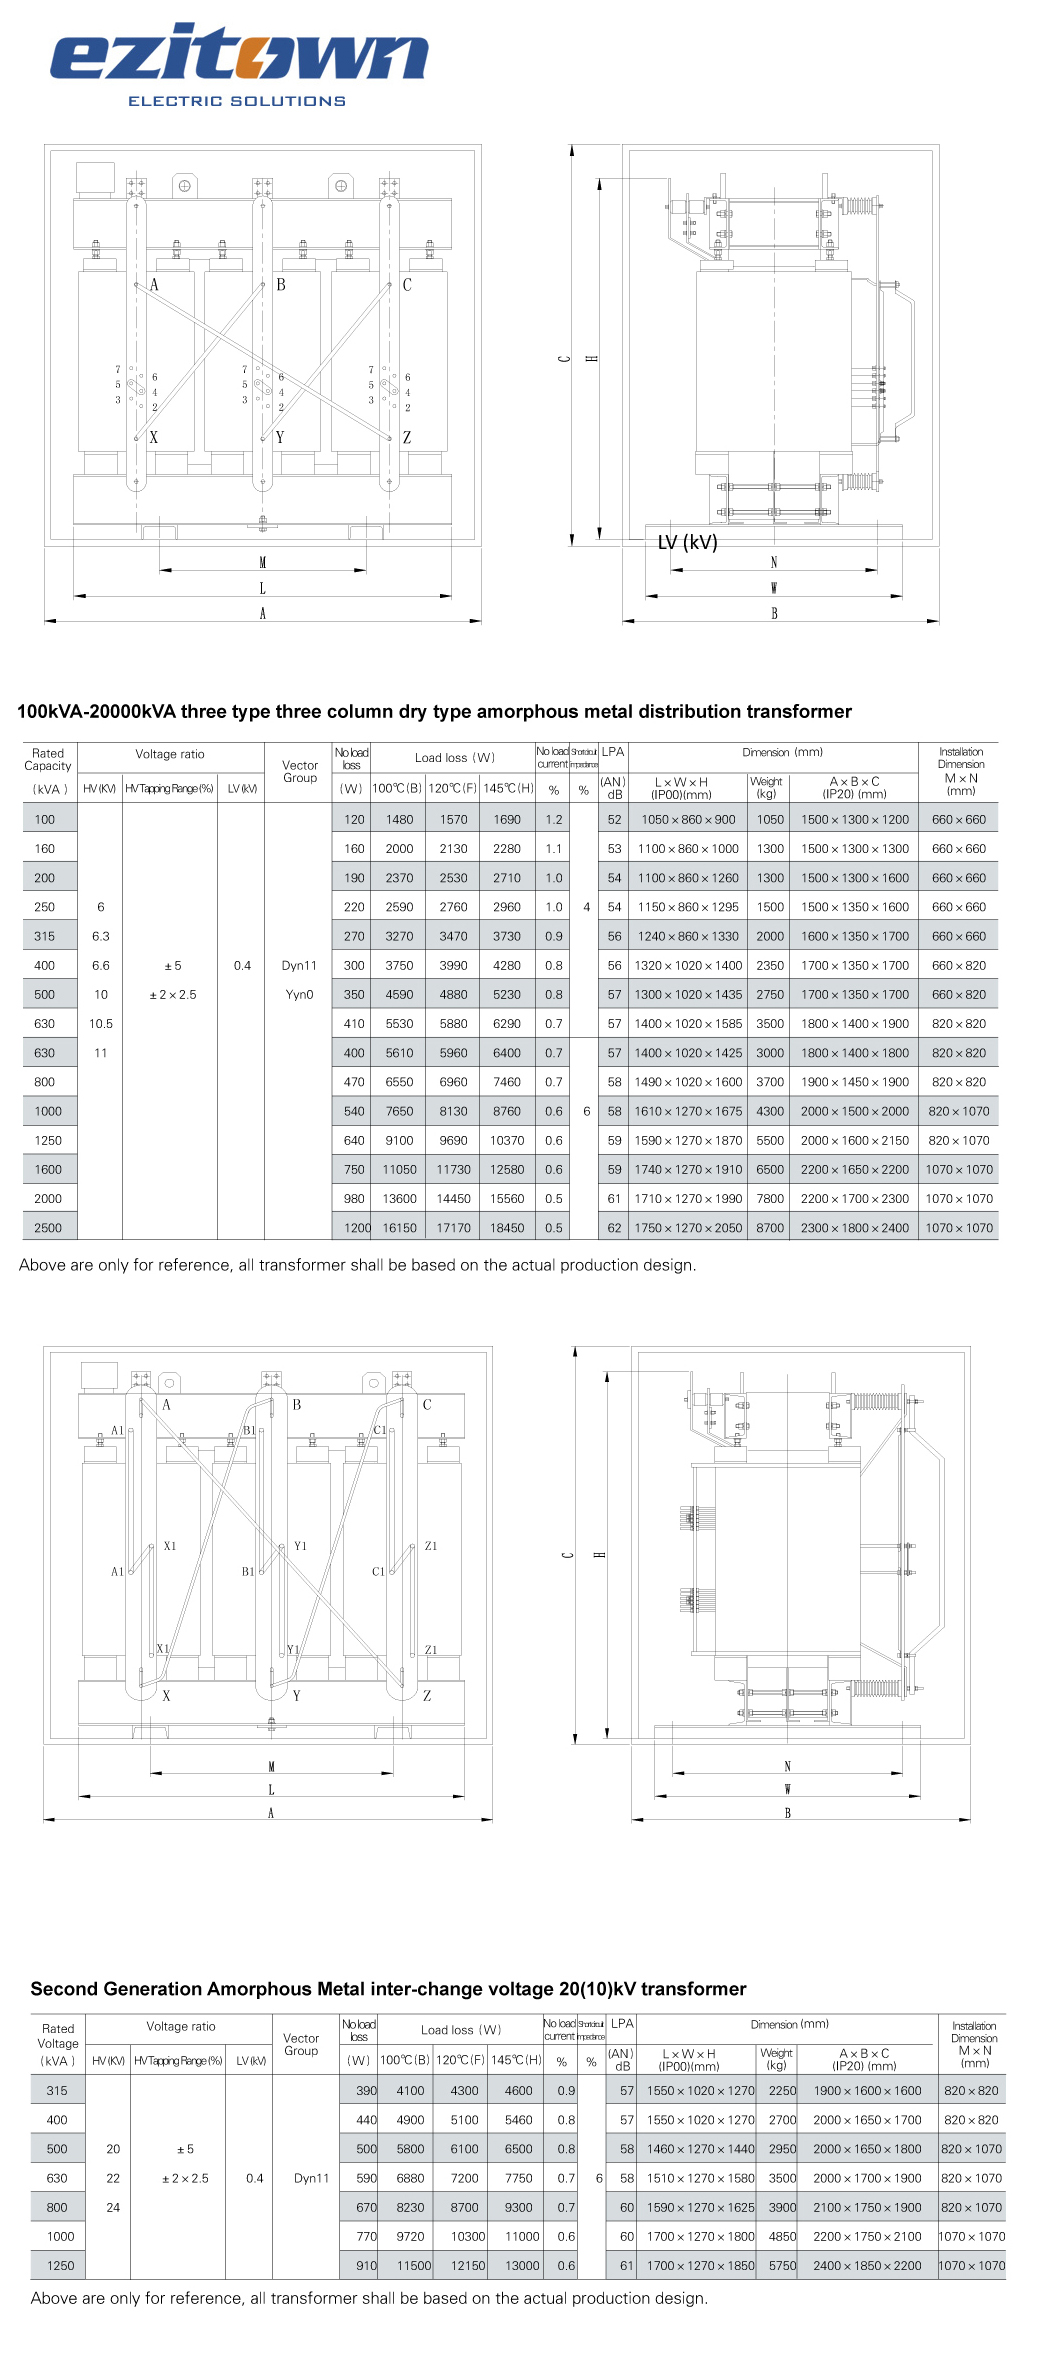 Scrbh15 Amorphous Alloy Dry Type Transformers